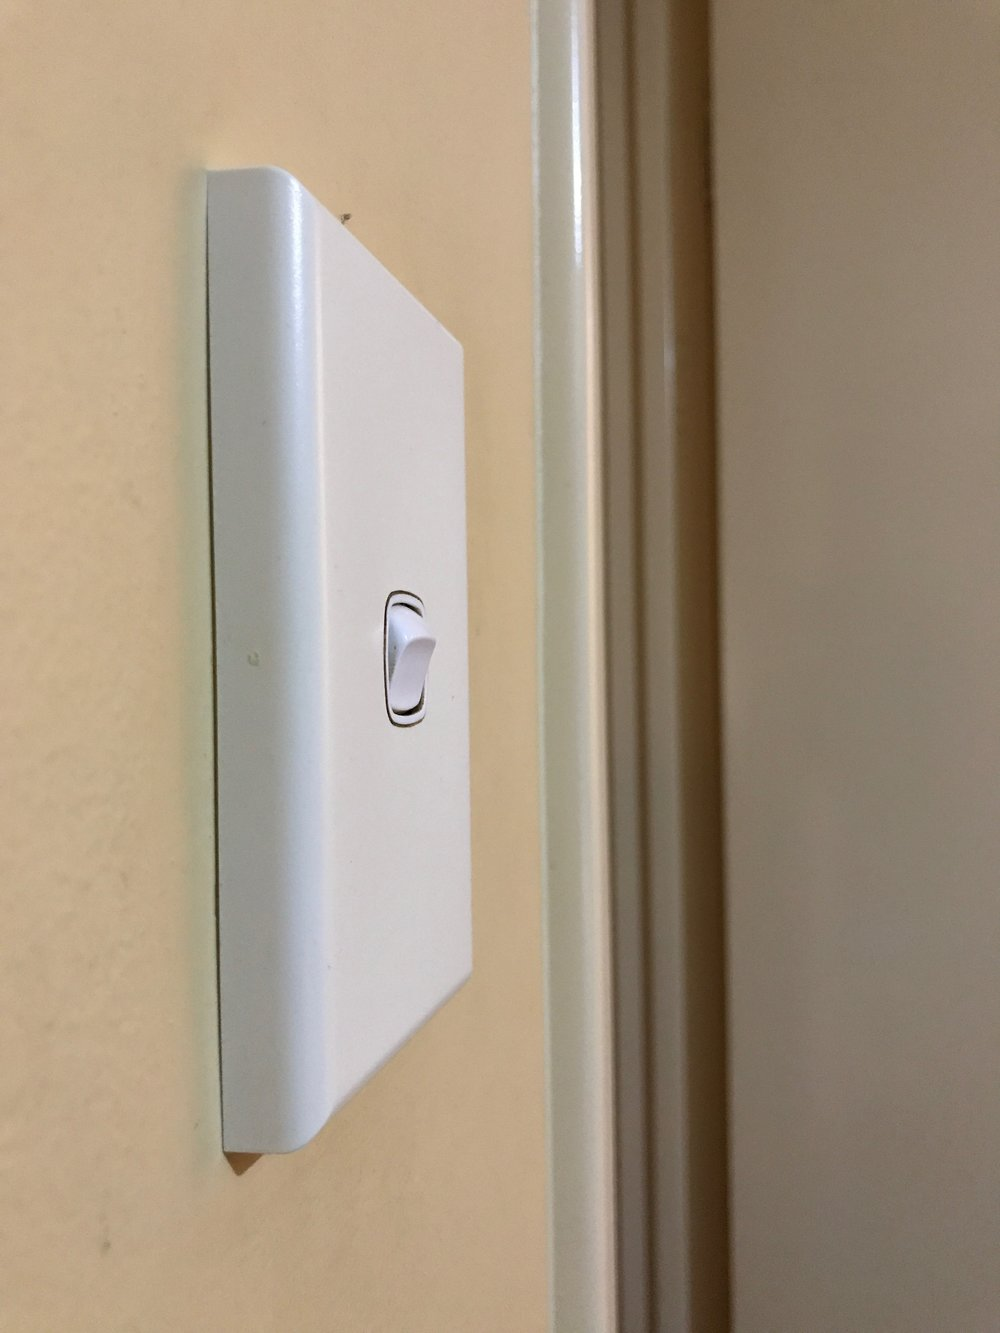 Wall Switch Side View